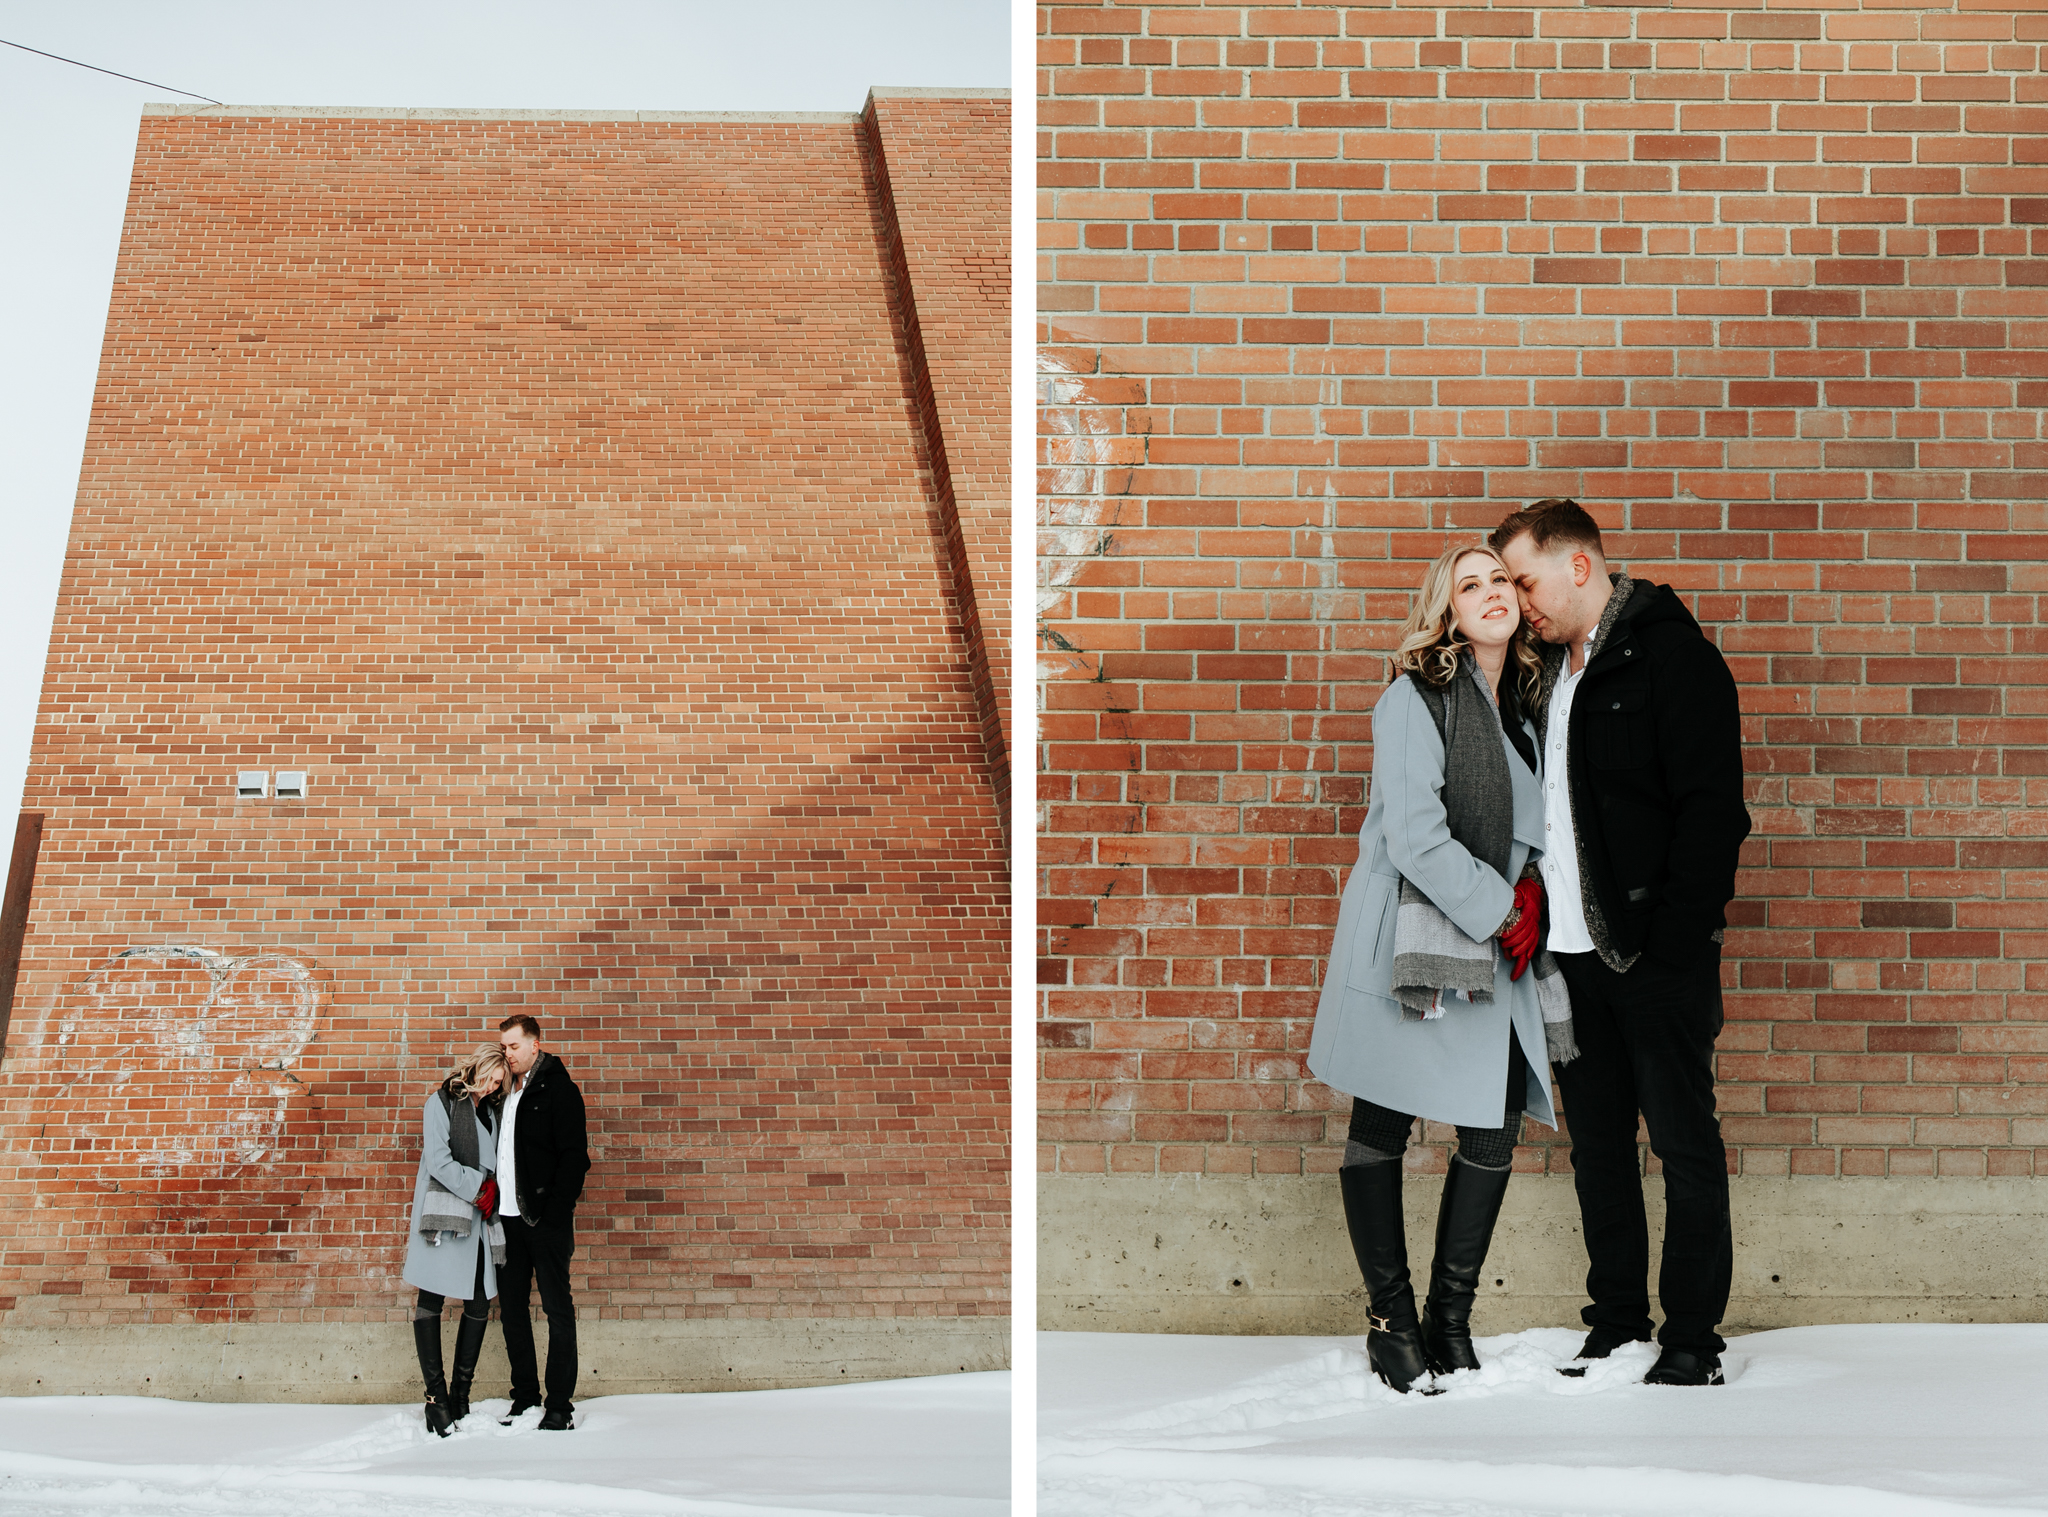 lethbridge-photographer-love-and-be-loved-photography-brandon-danielle-winter-engagement-downtown-yql-picture-image-photo-57.jpg